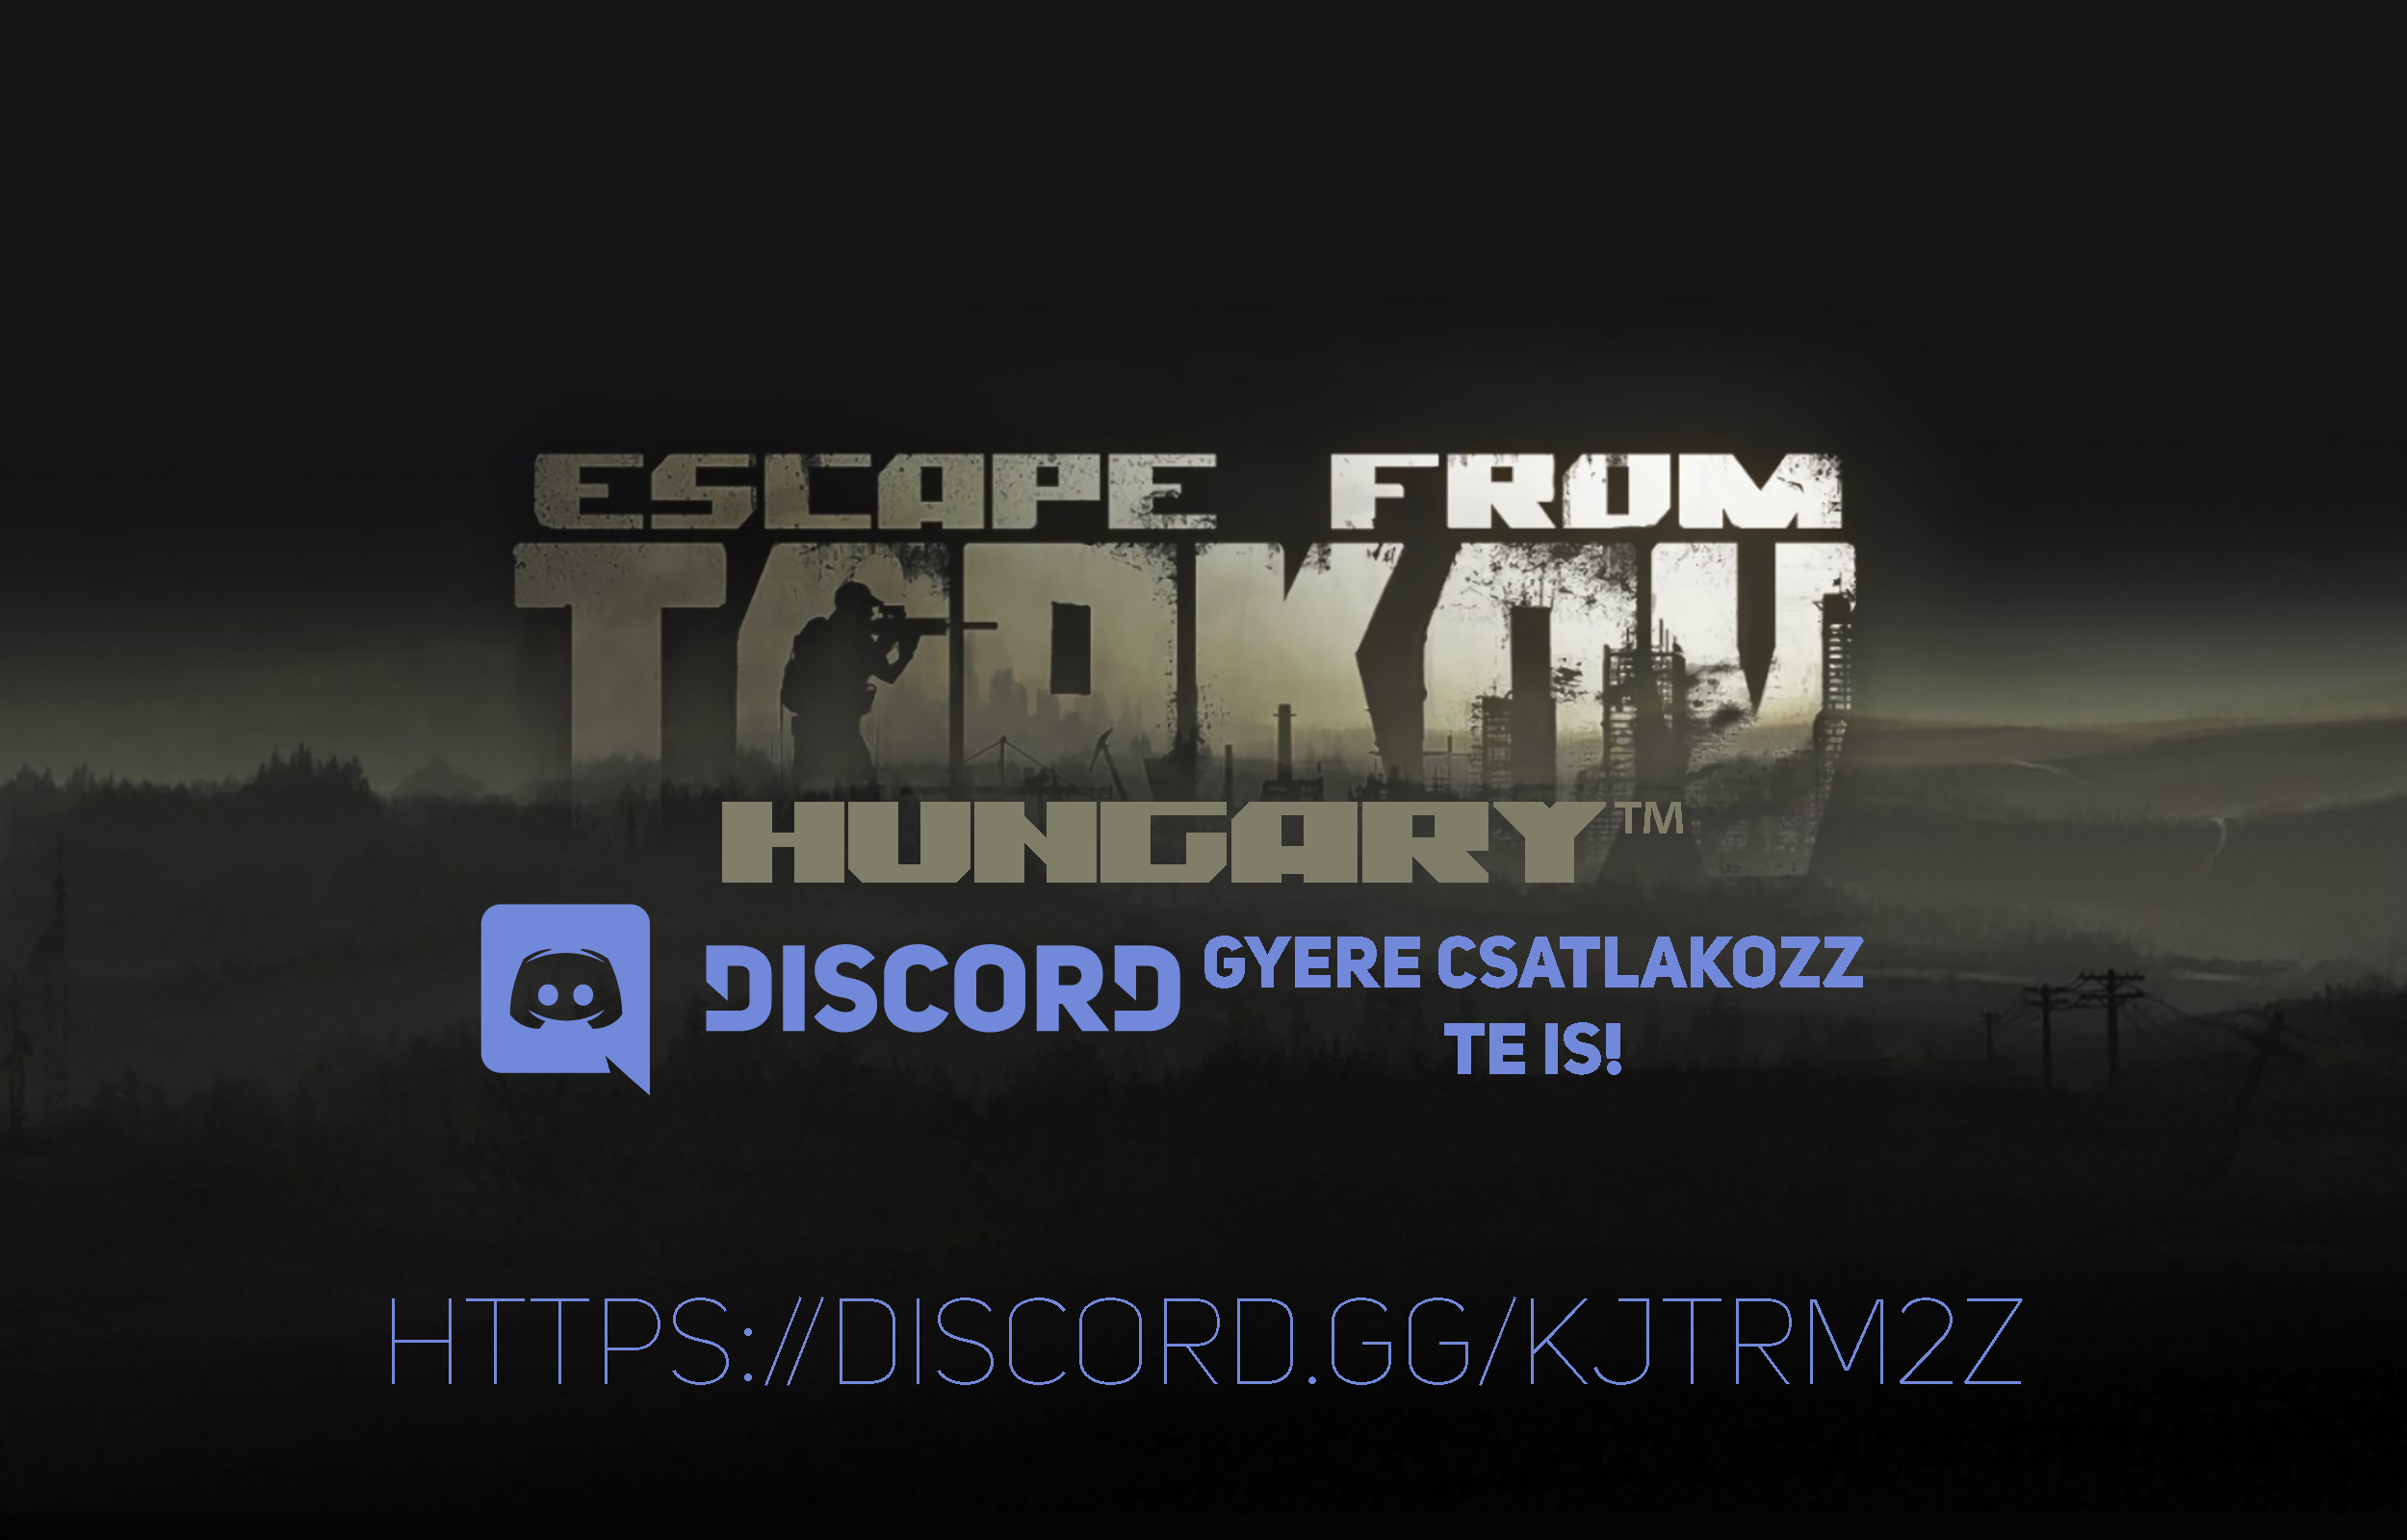 Escape from Tarkov Hungary Discord Közösség! - Escape from Tarkov